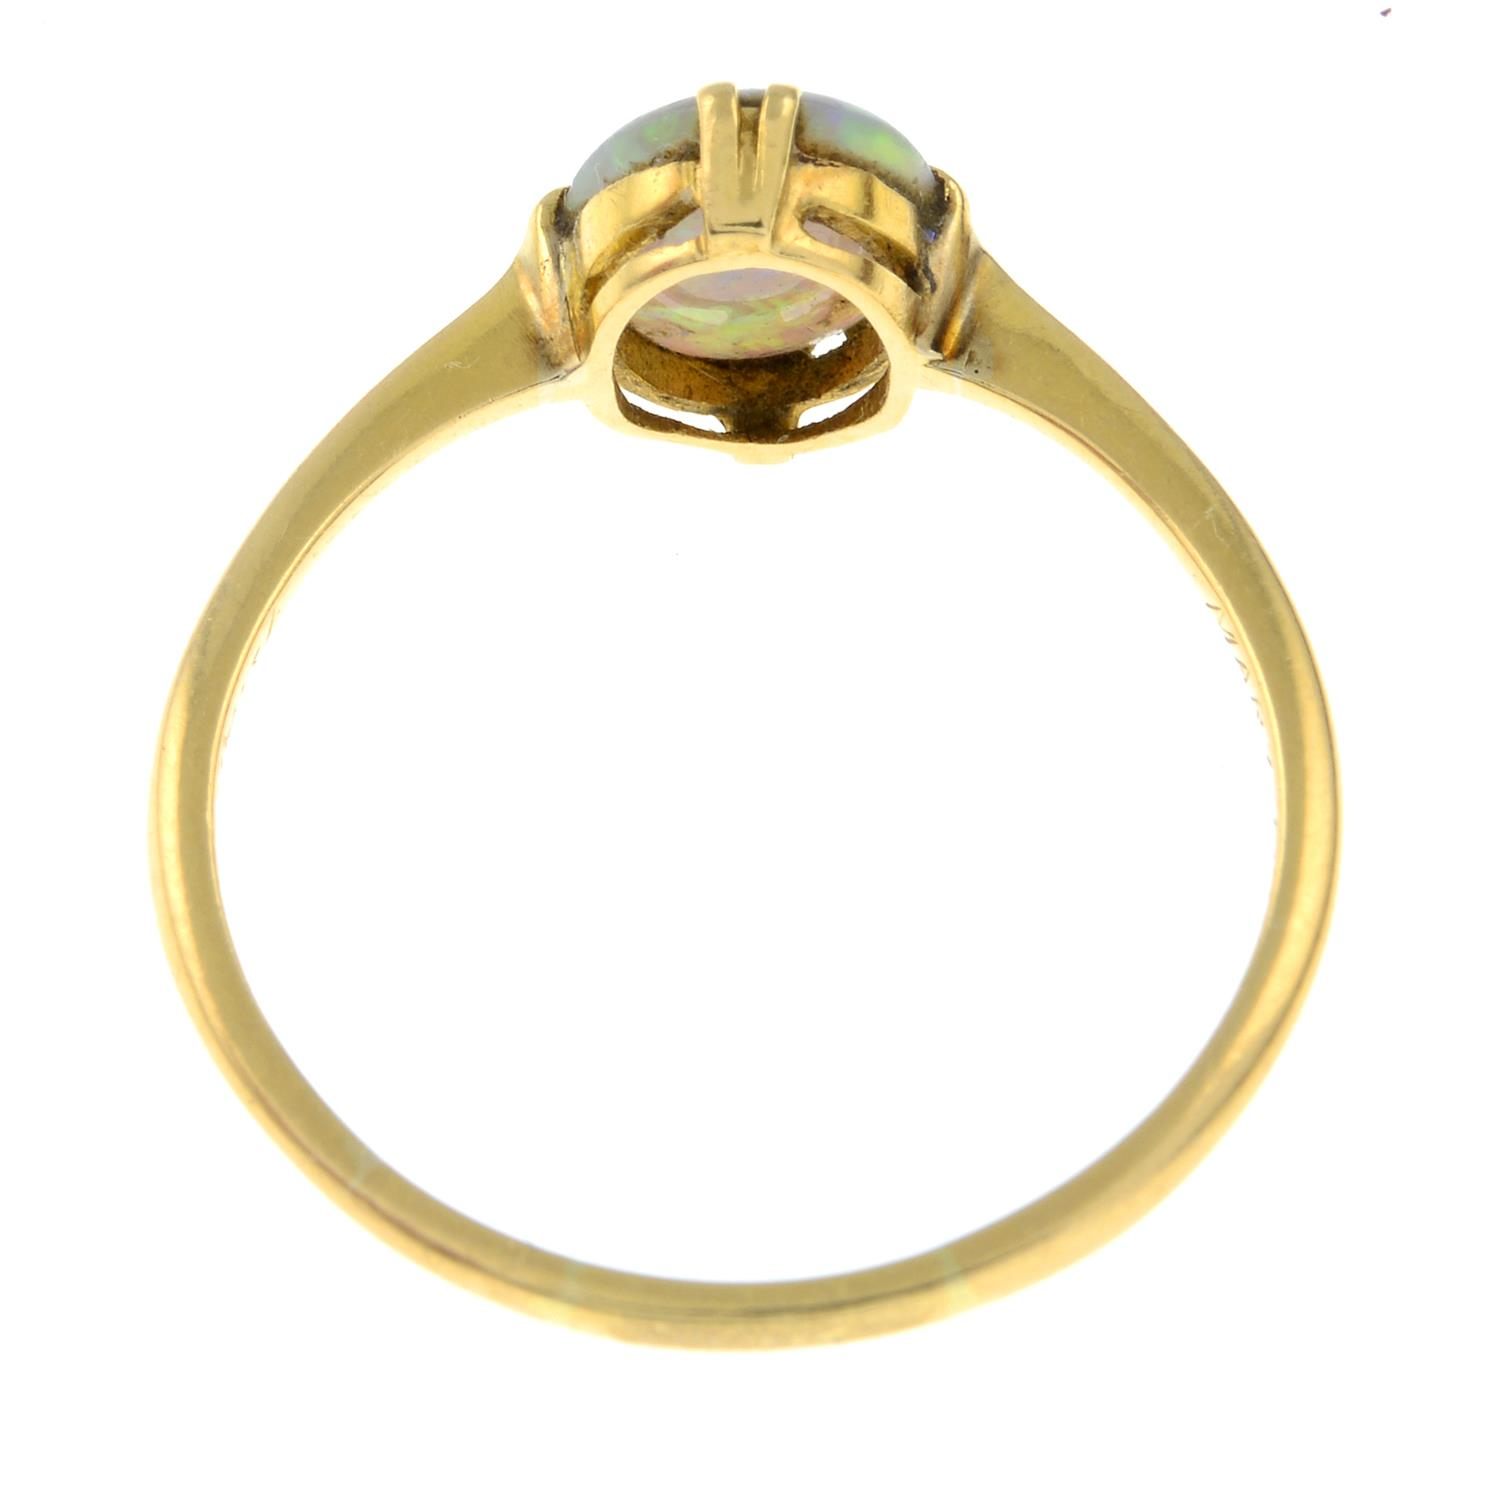 An early 20th century 18ct gold opal single-stone ring. - Image 3 of 3